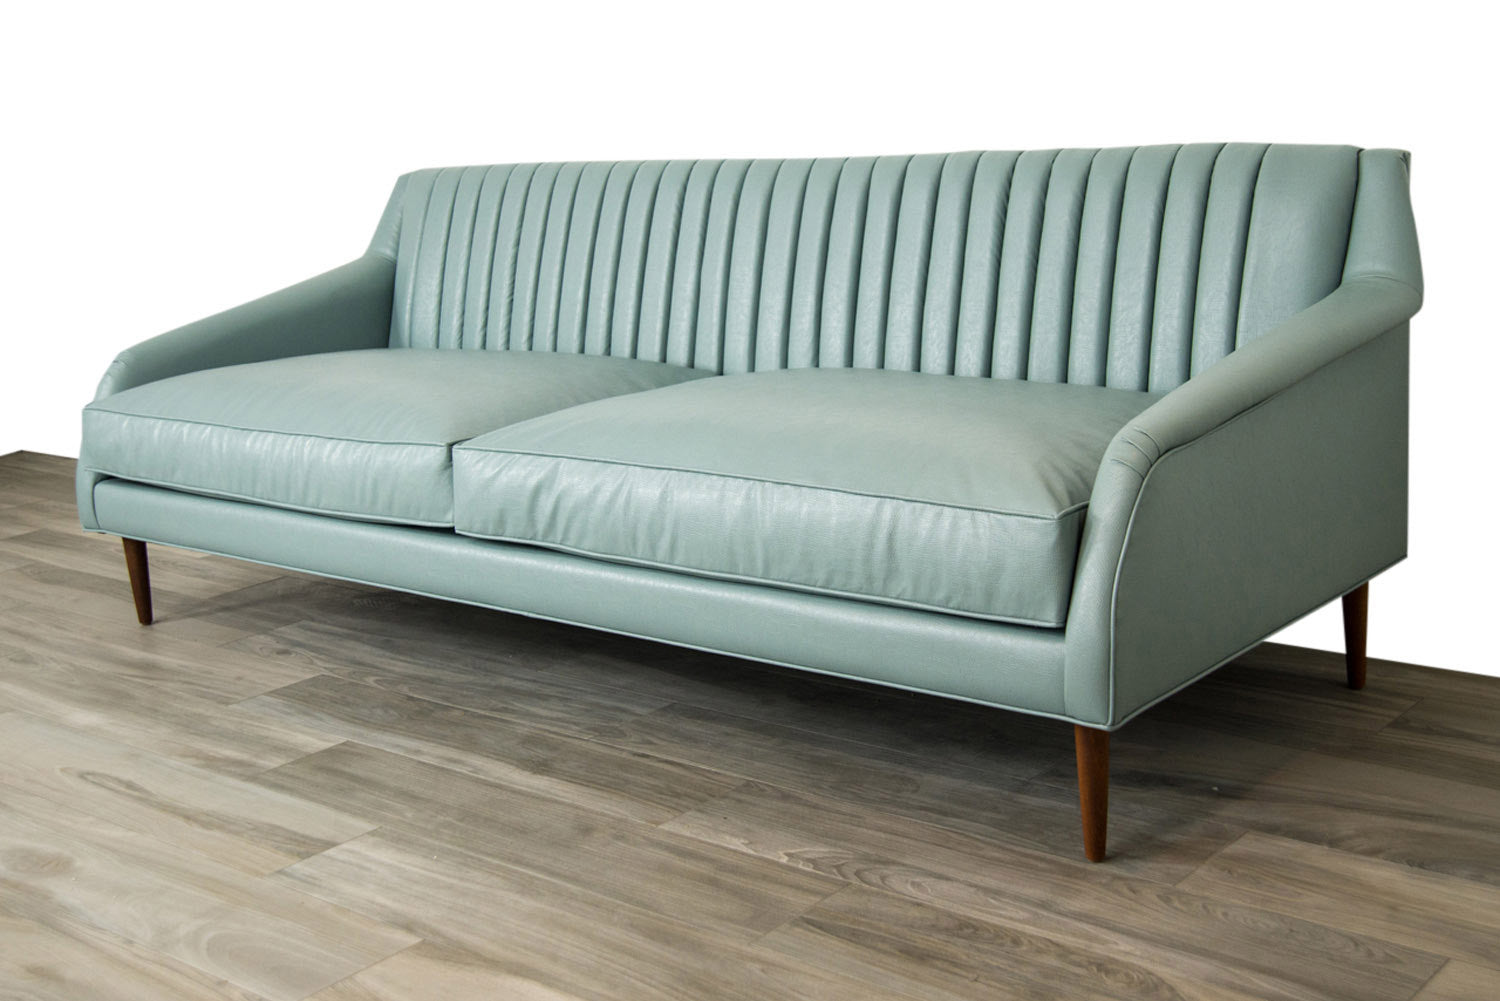 Palermo Sofa In Ice Blue Faux Leather